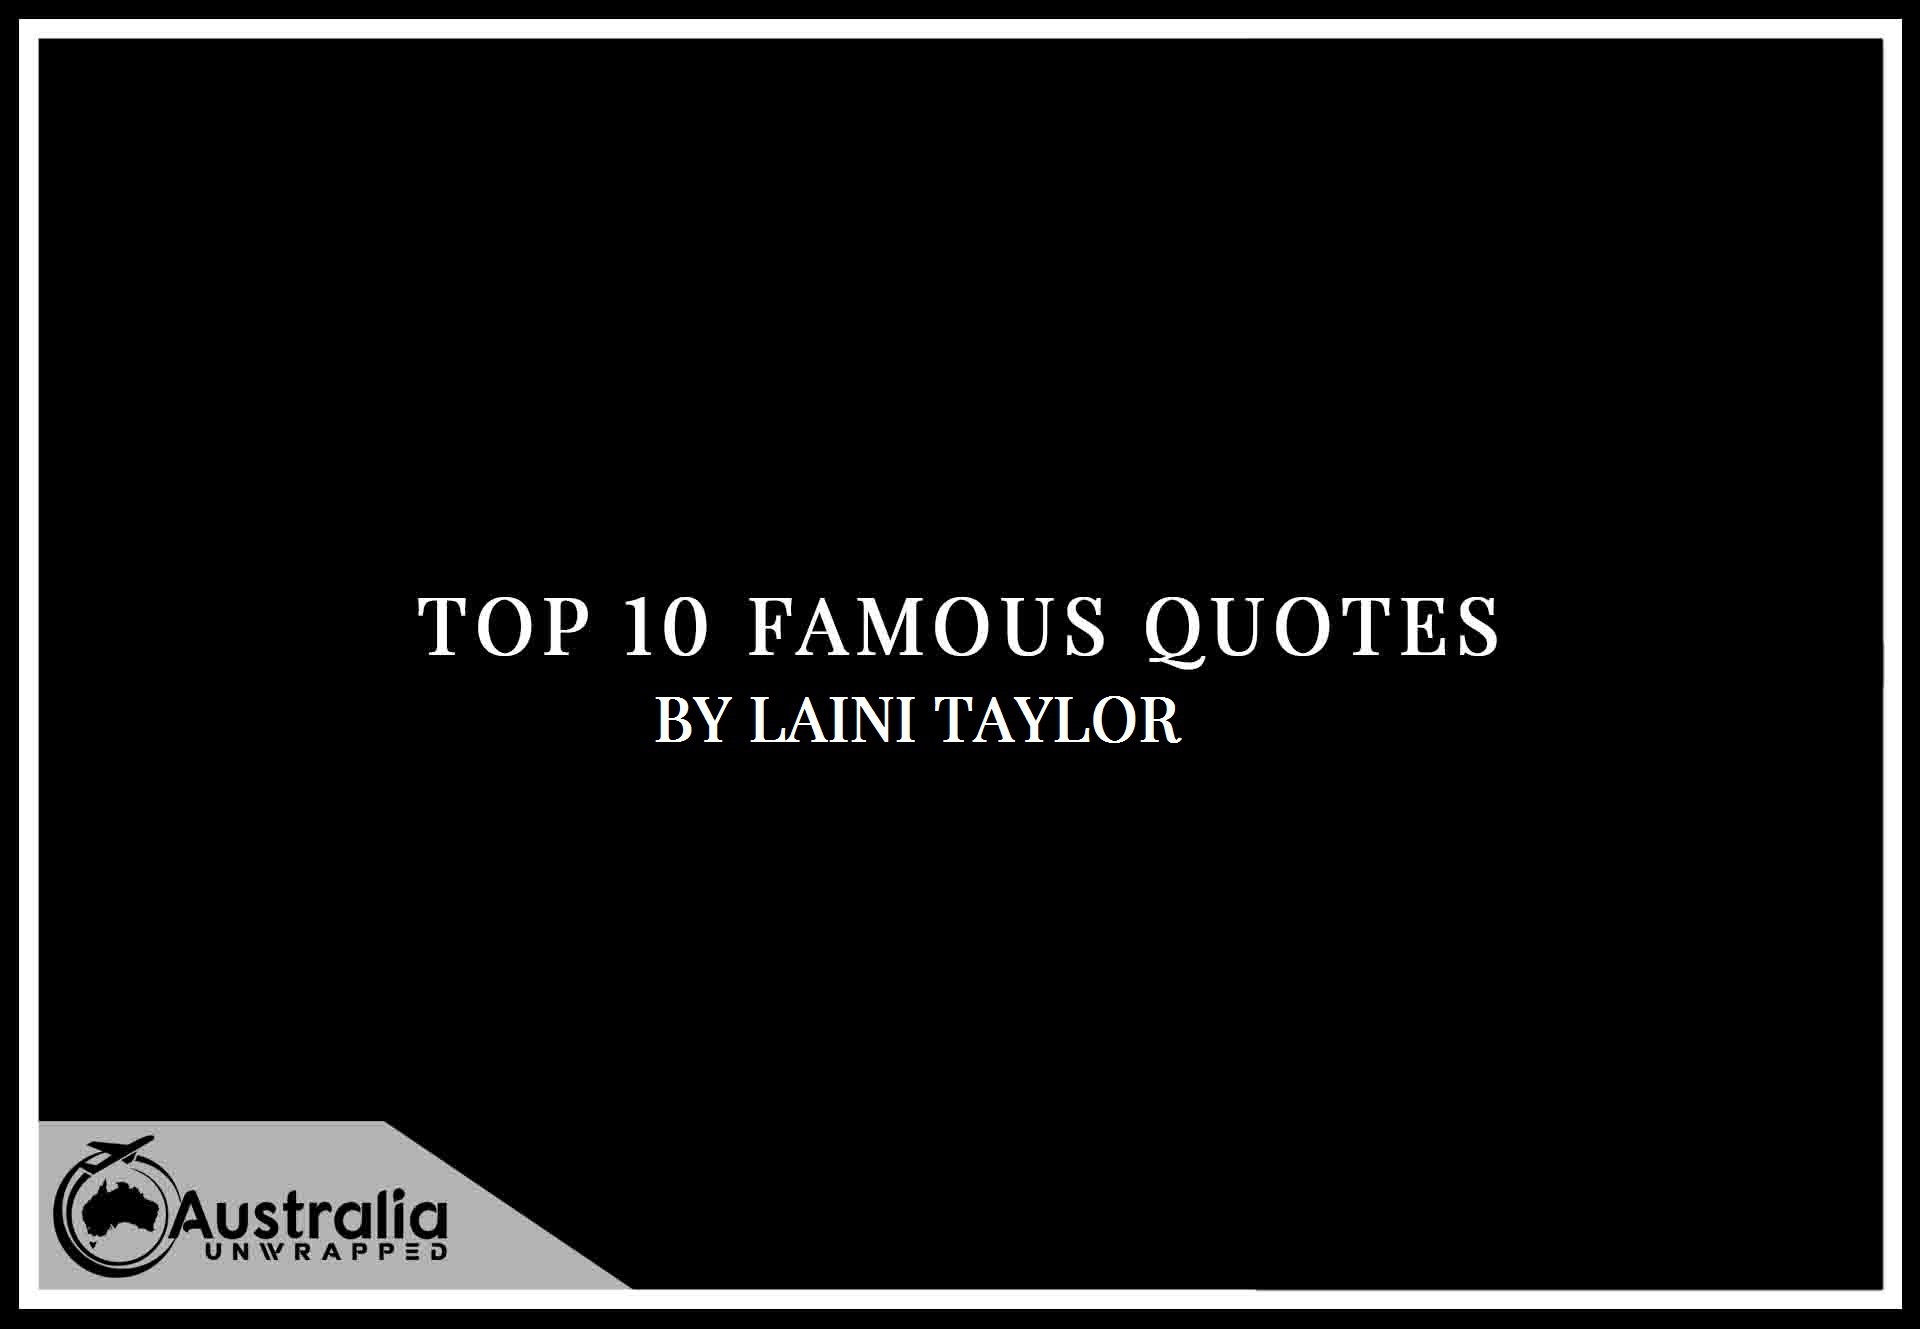 Laini Taylor's Top 10 Popular and Famous Quotes